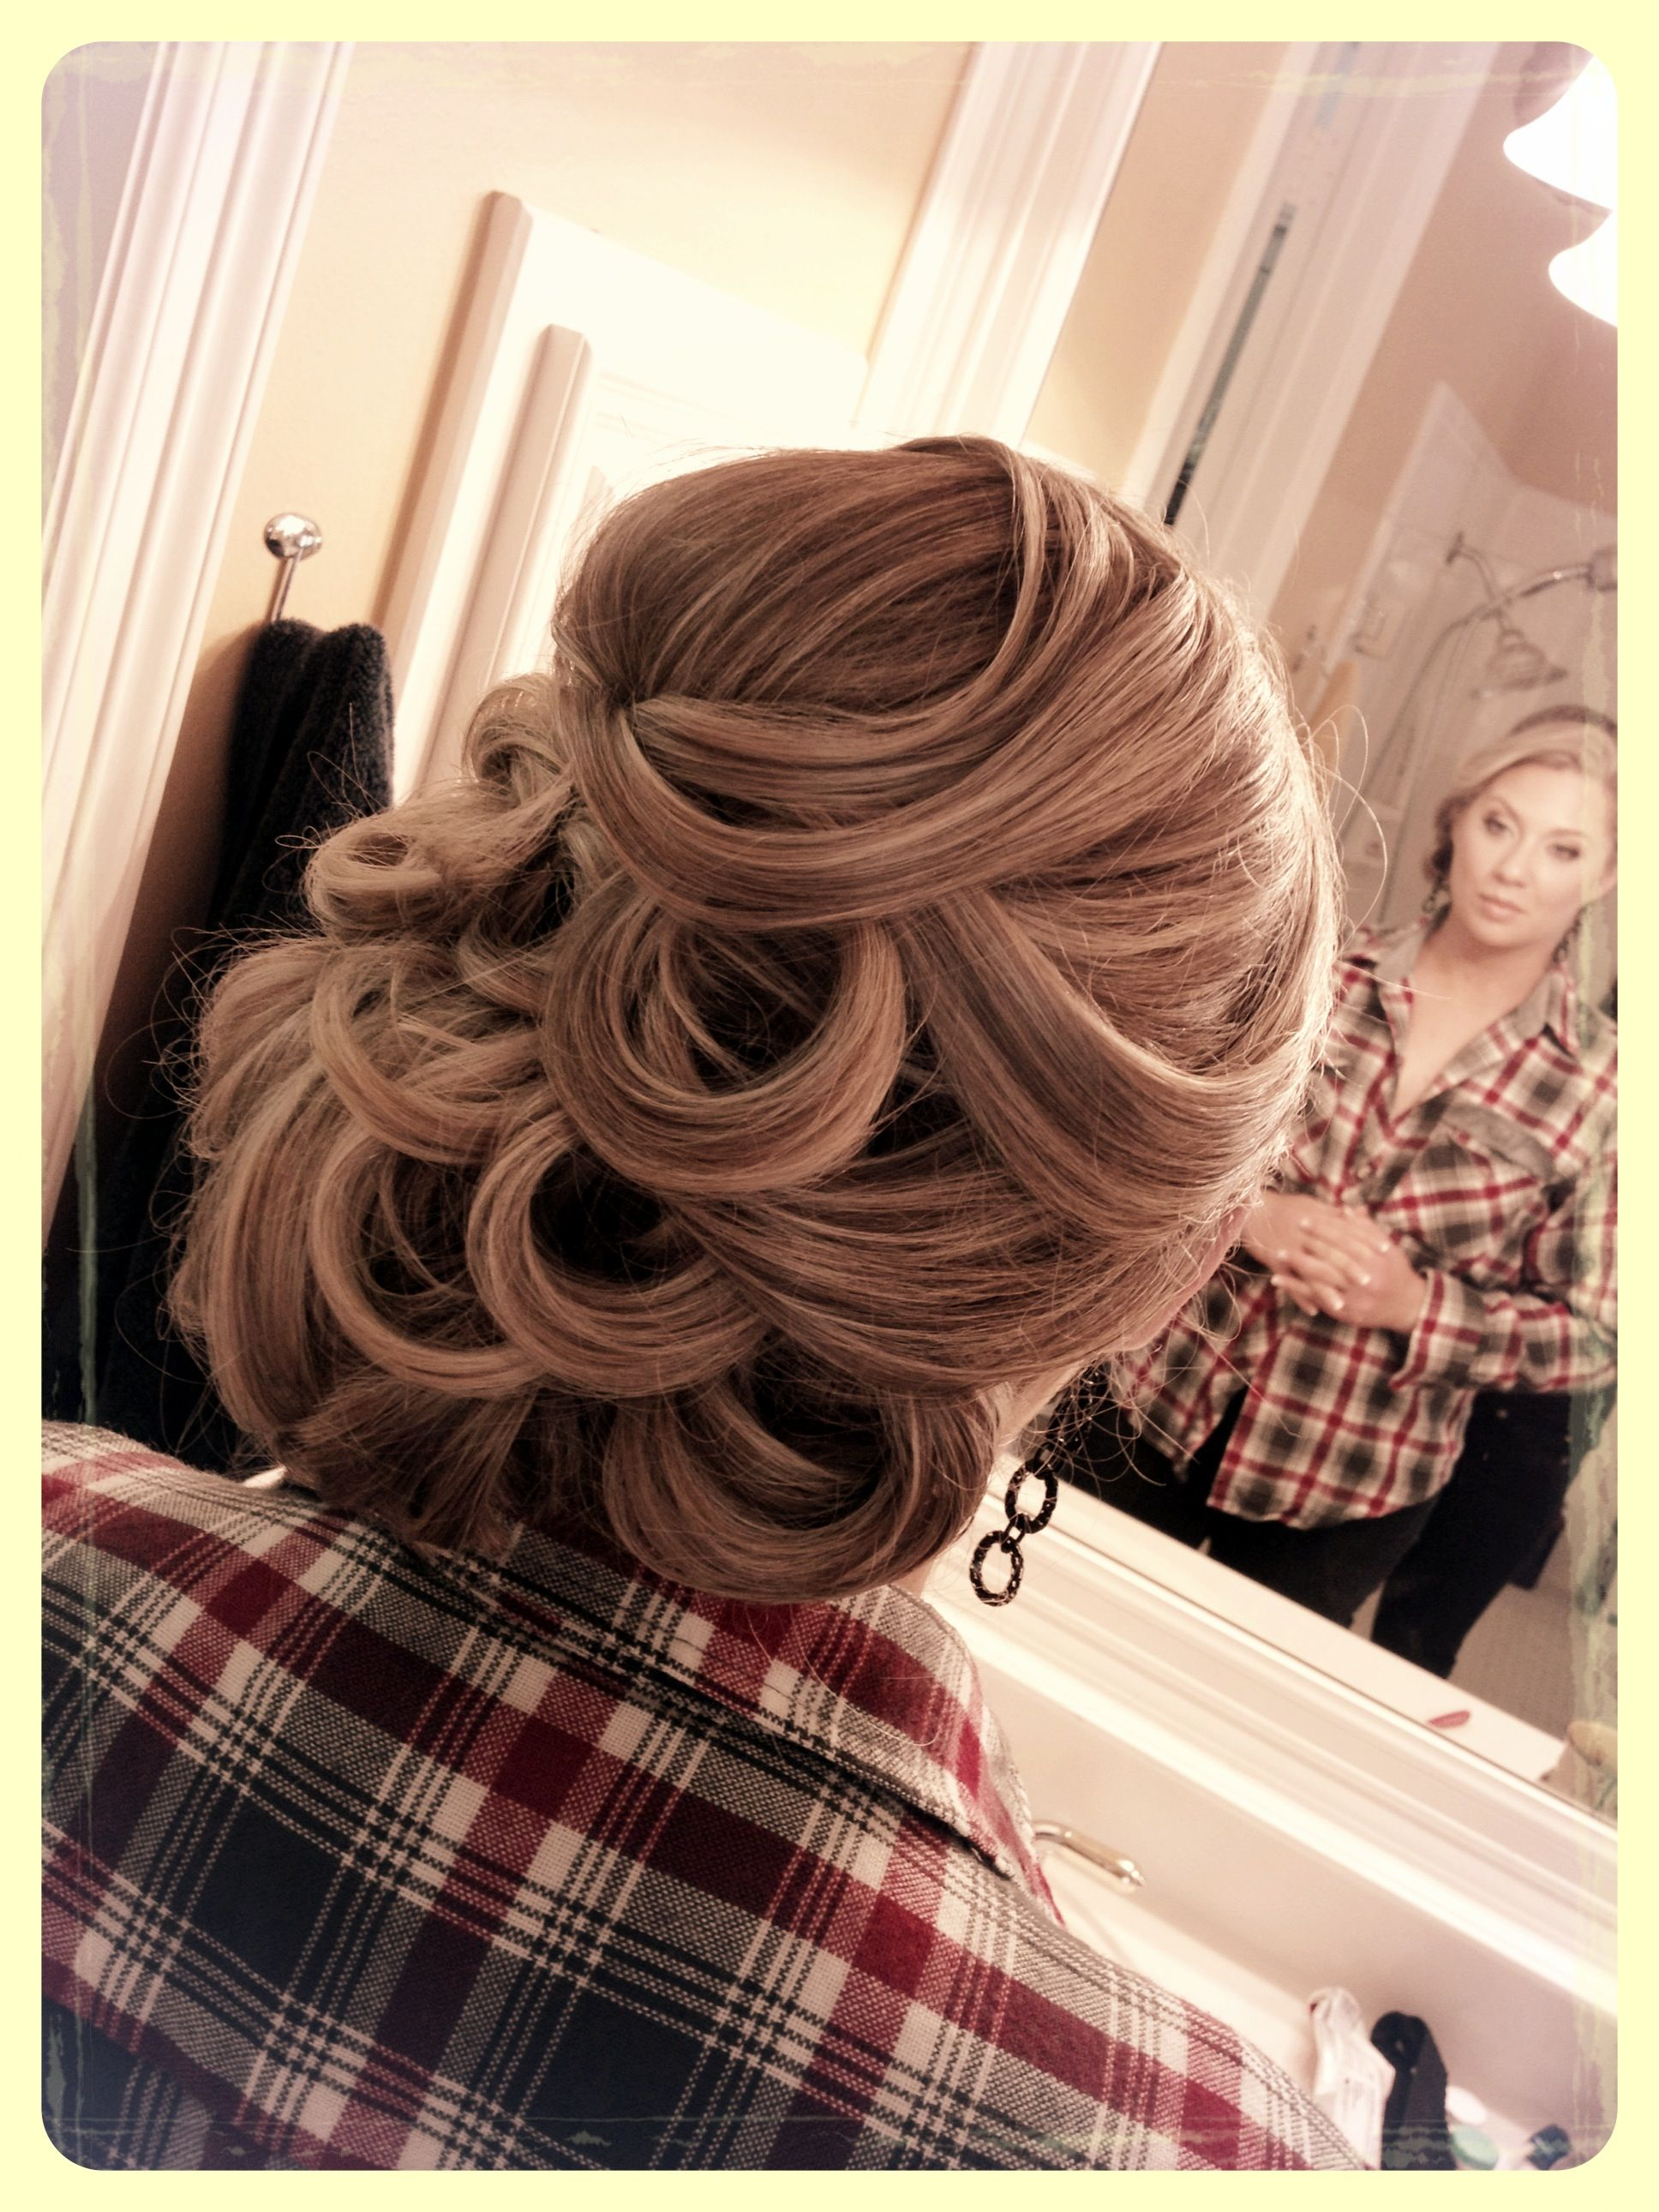 Admirable 1000 Images About Wedding Hair On Pinterest Updo Yankee Doodle Short Hairstyles Gunalazisus